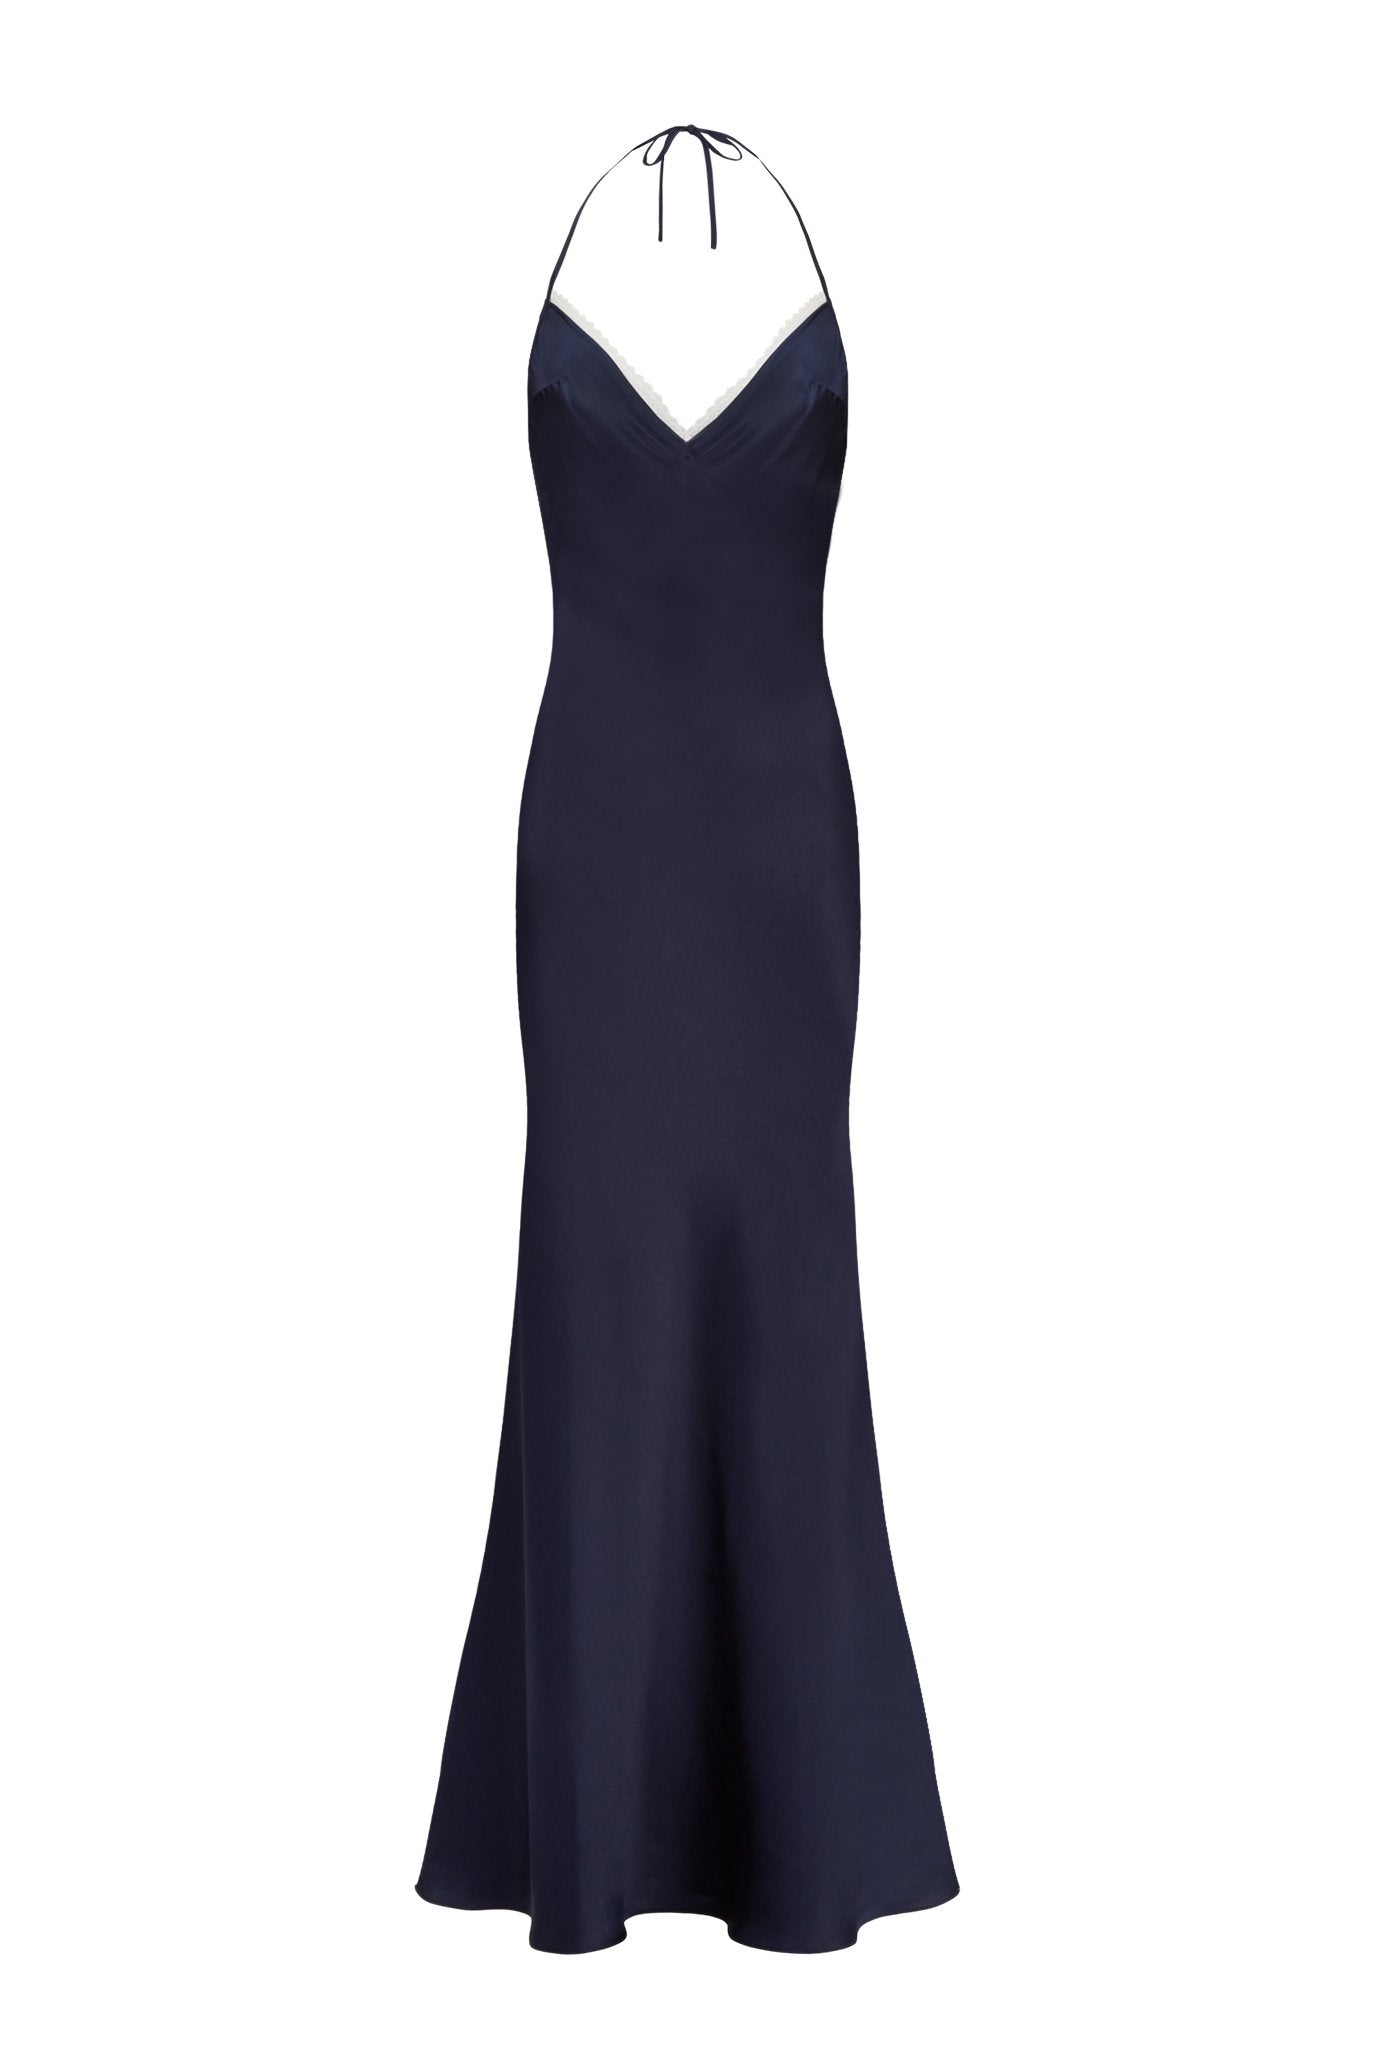 The slip dress navy silk